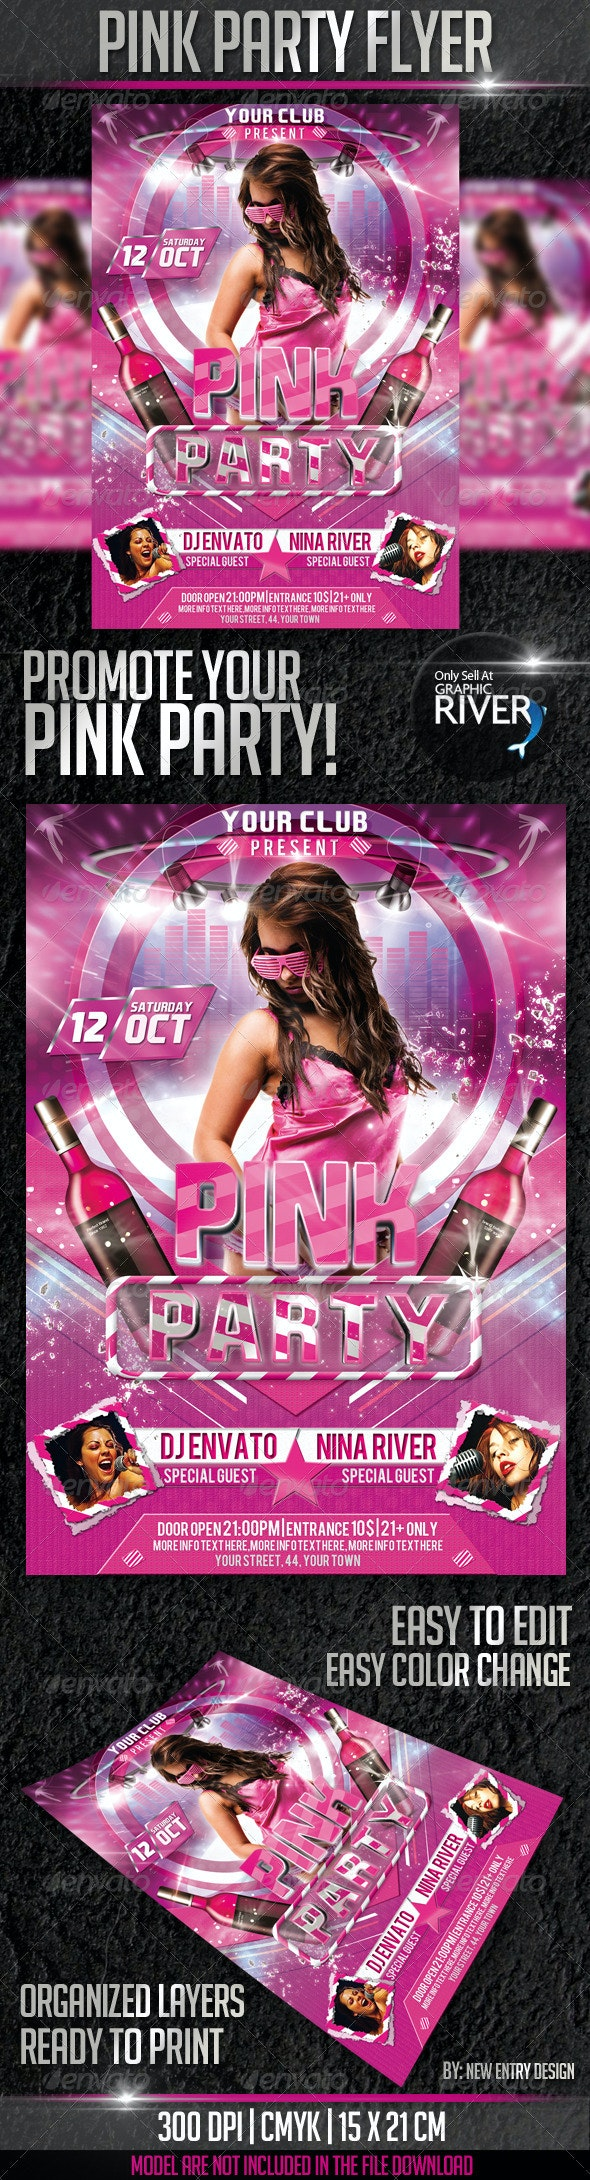 Pink Party Flyer Template - Events Flyers